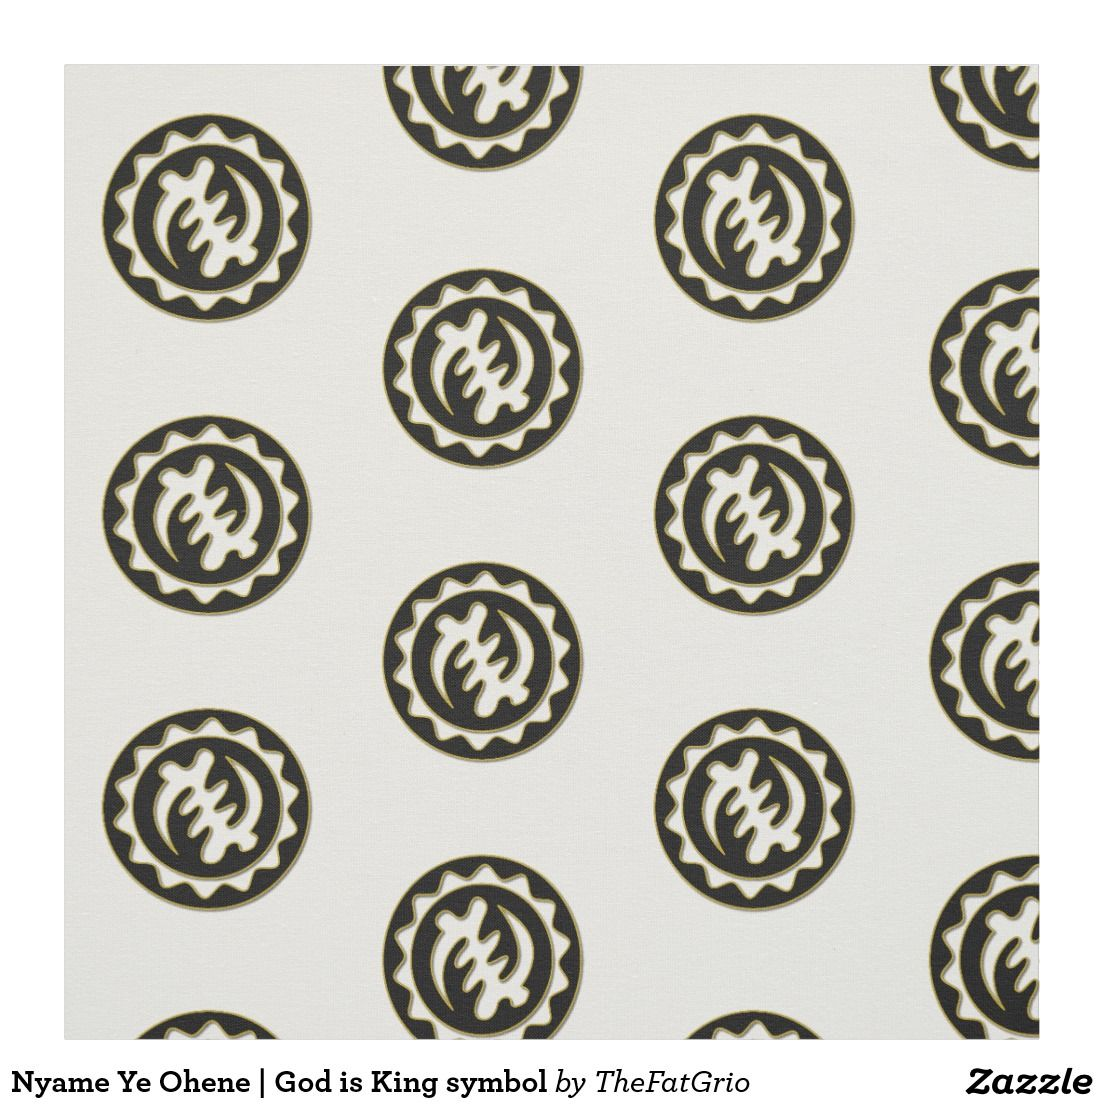 Nyame ye ohene god is king symbol fabric adinkra symbols adinkra symbol meaning god is king visit the fat grio store for more items related to the symbol and more adinkra symbols and their meaning biocorpaavc Images